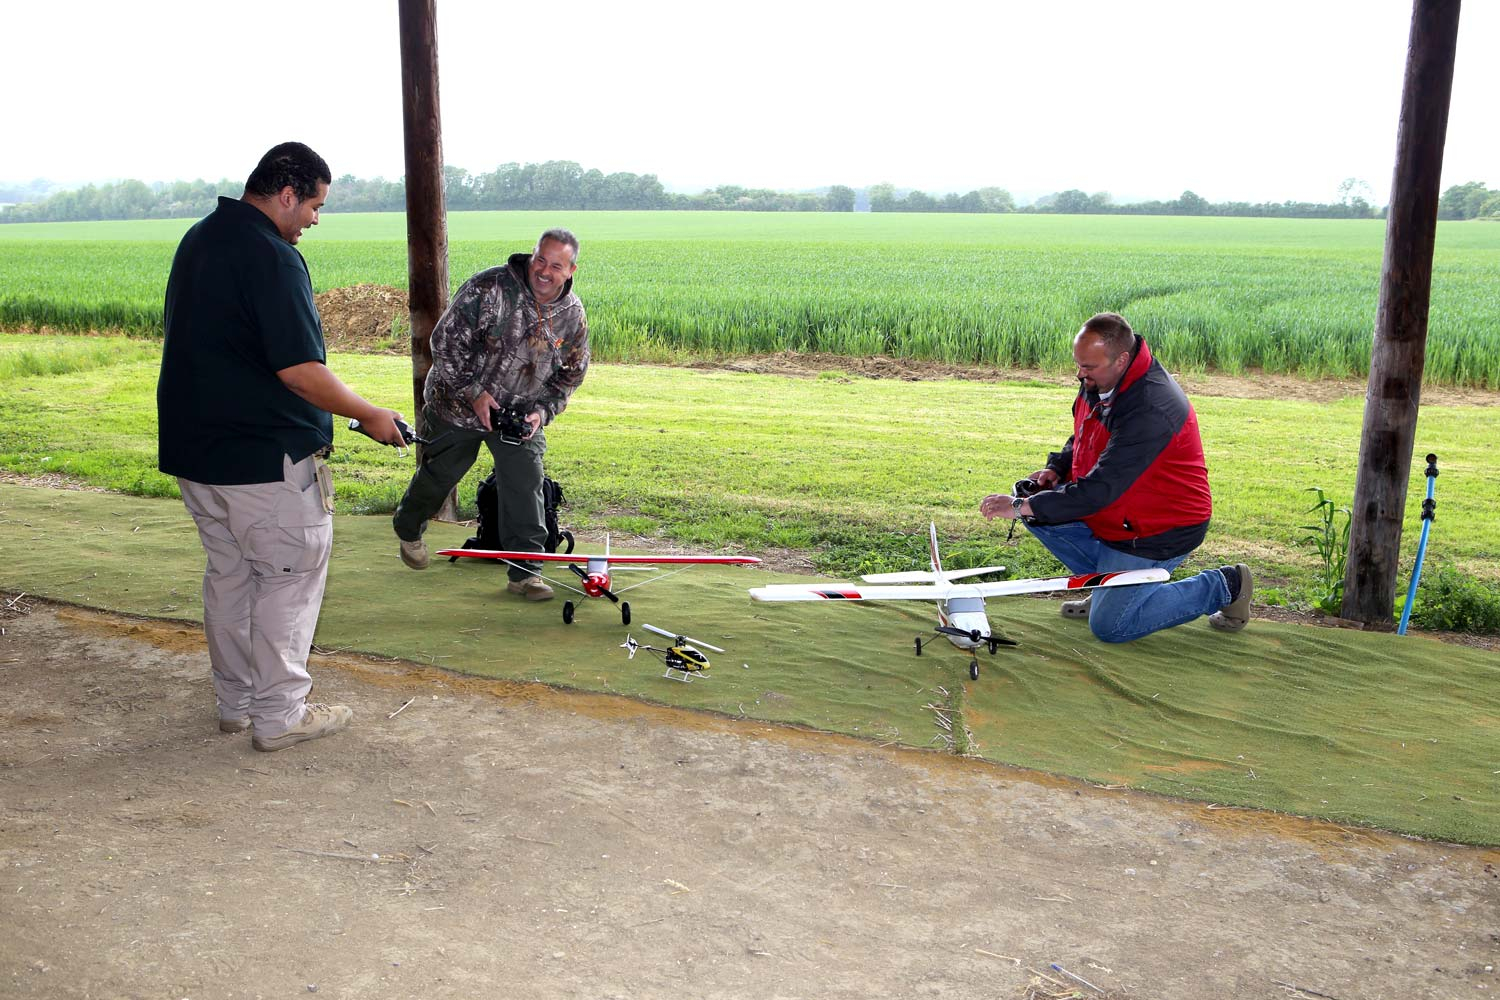 TModel Aircraft Flying at Pete's Airgun Farm in Essex